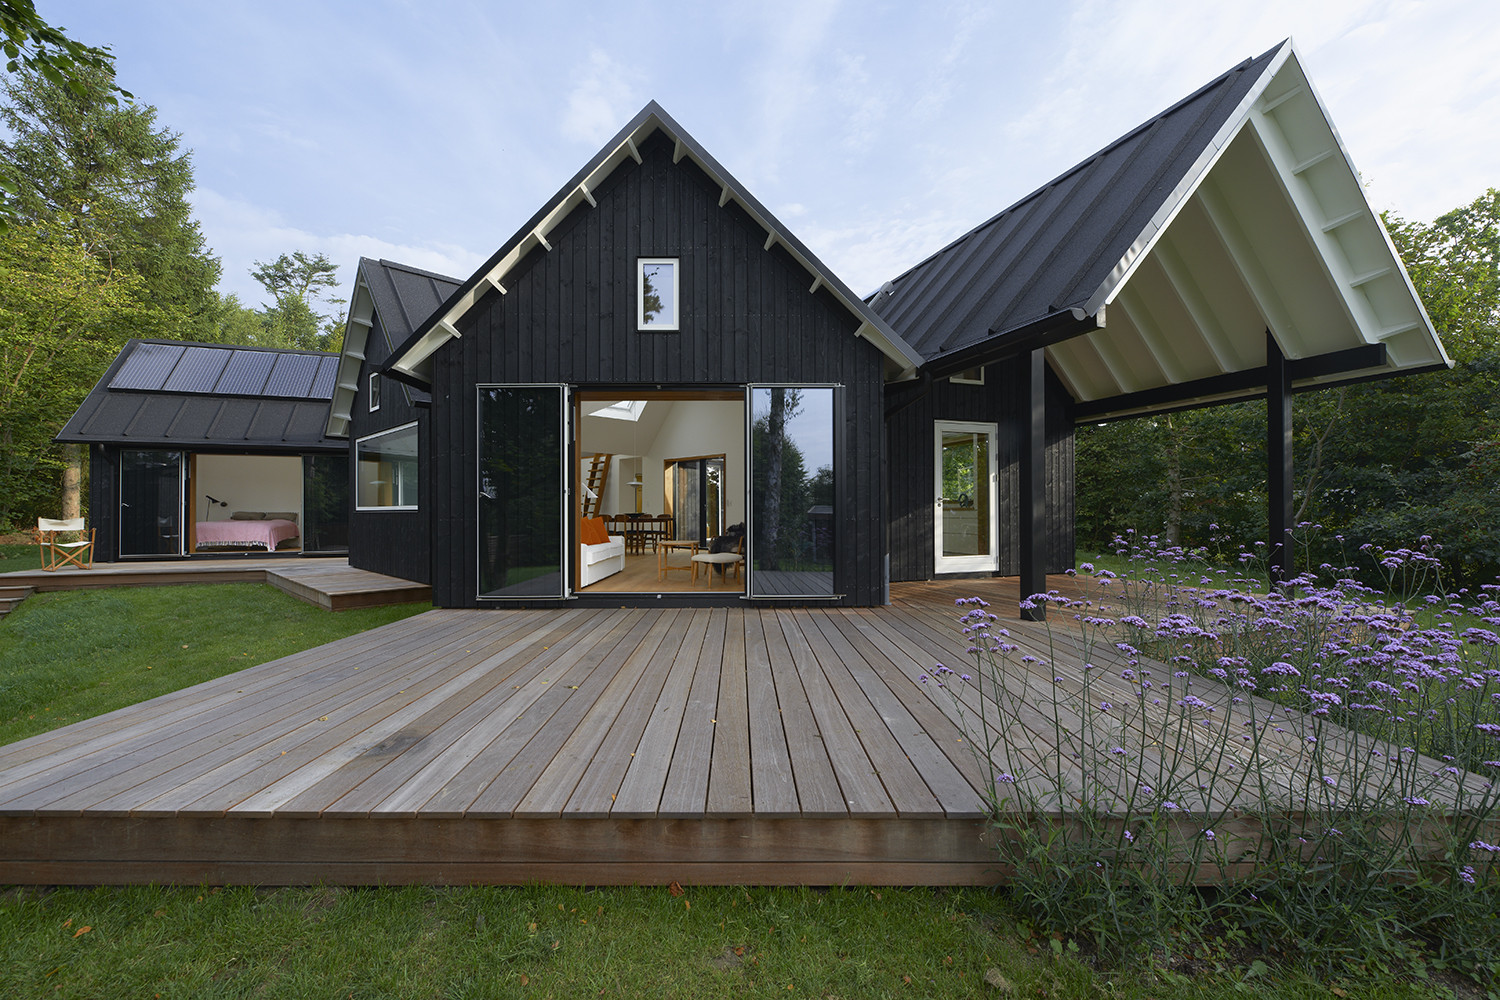 Danish Summer House / Powerhouse Company, © Åke E. Son Lindman